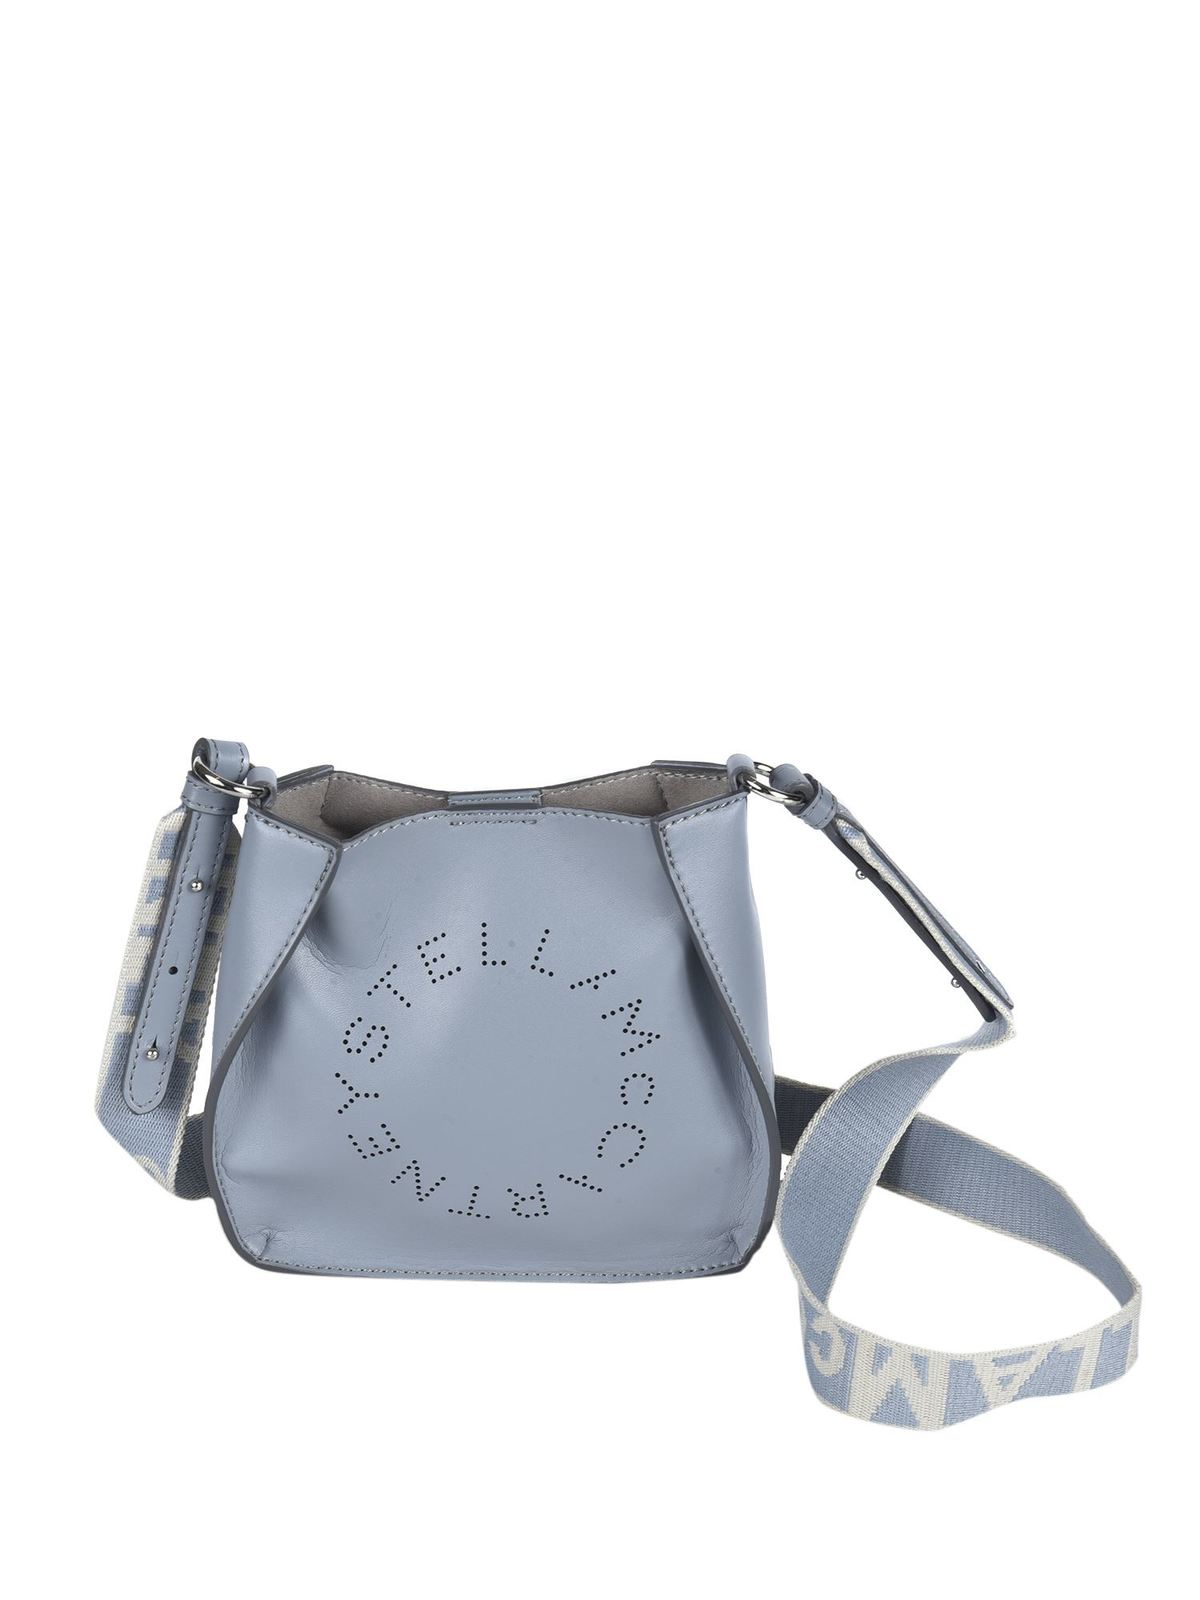 Stella Mccartney ECO SOFT HOBO BAG IN LIGHT BLUE